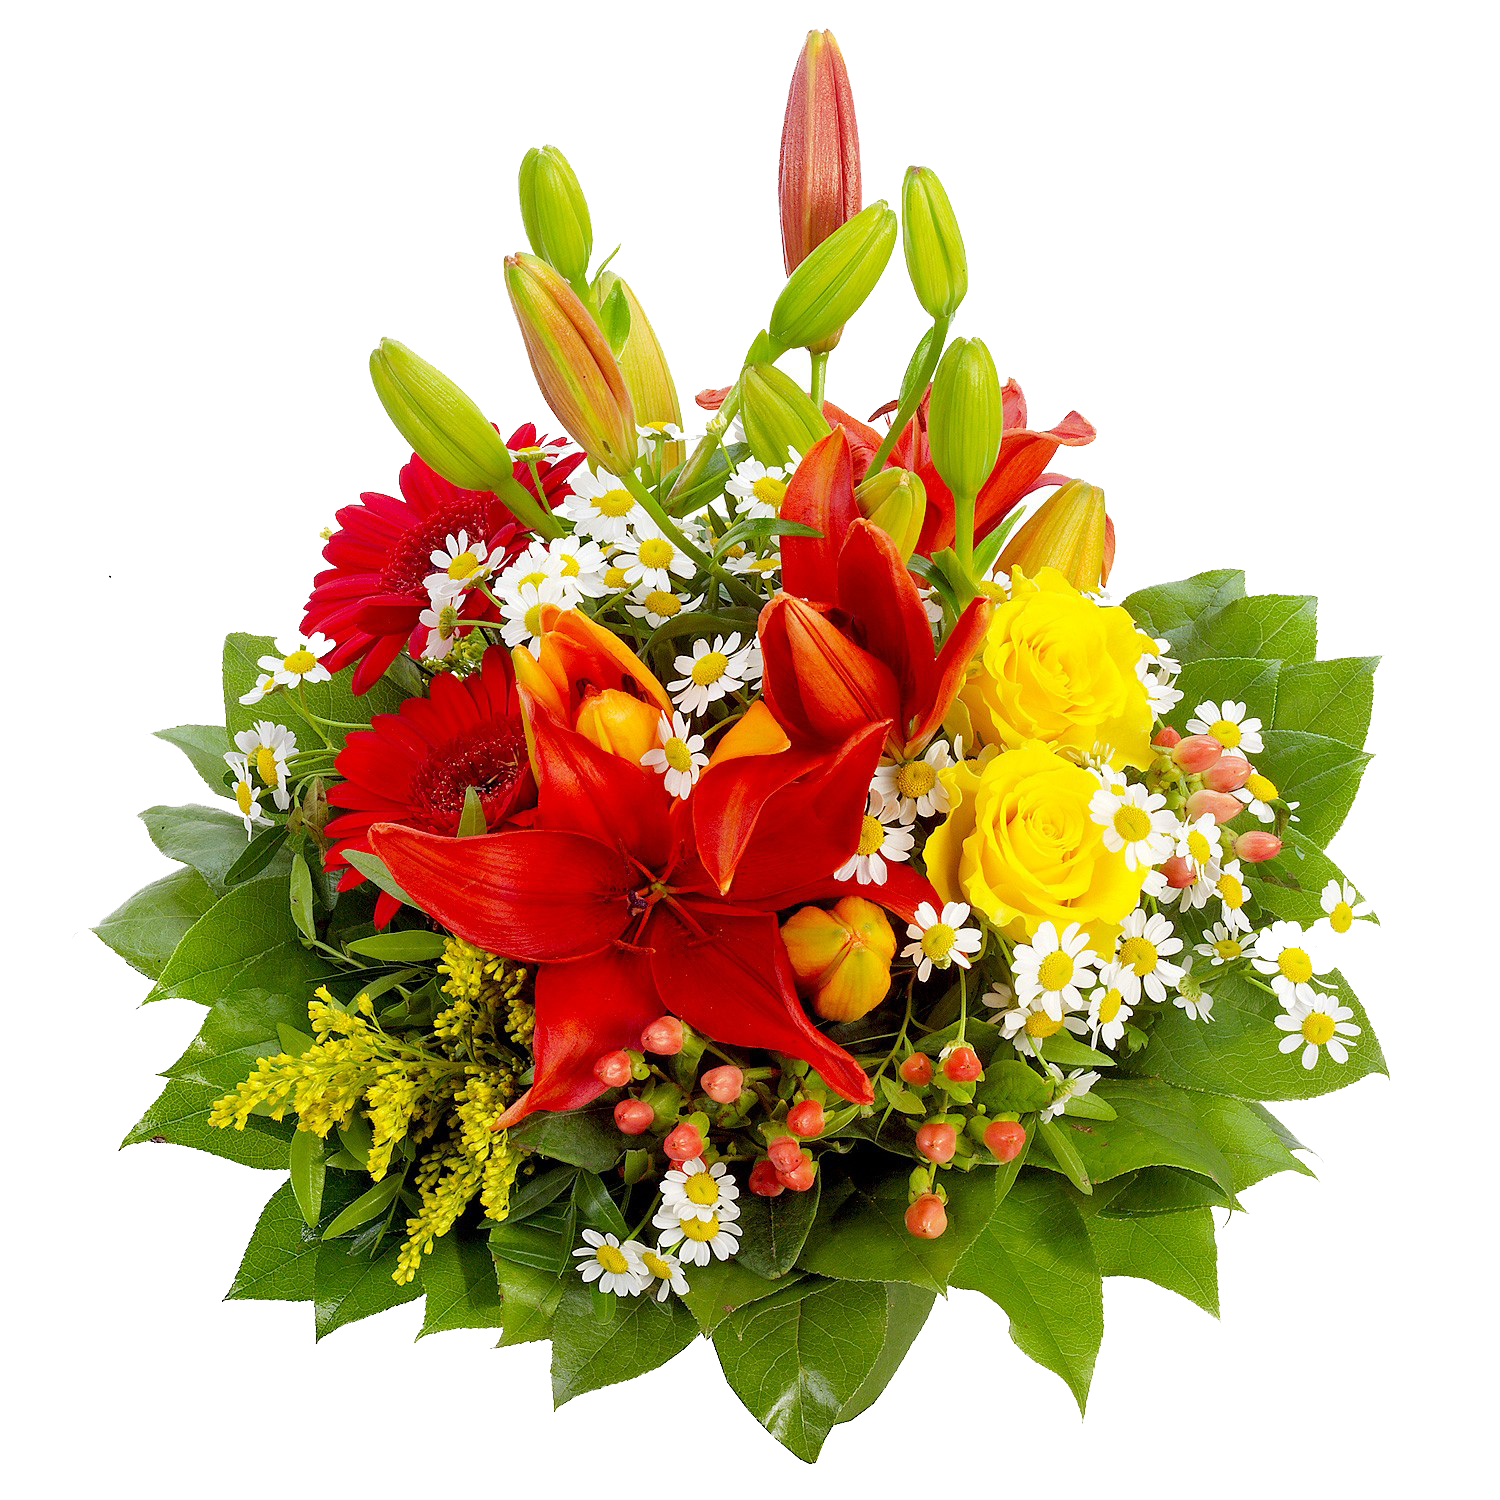 Flowers png. Bouquet images transparent free